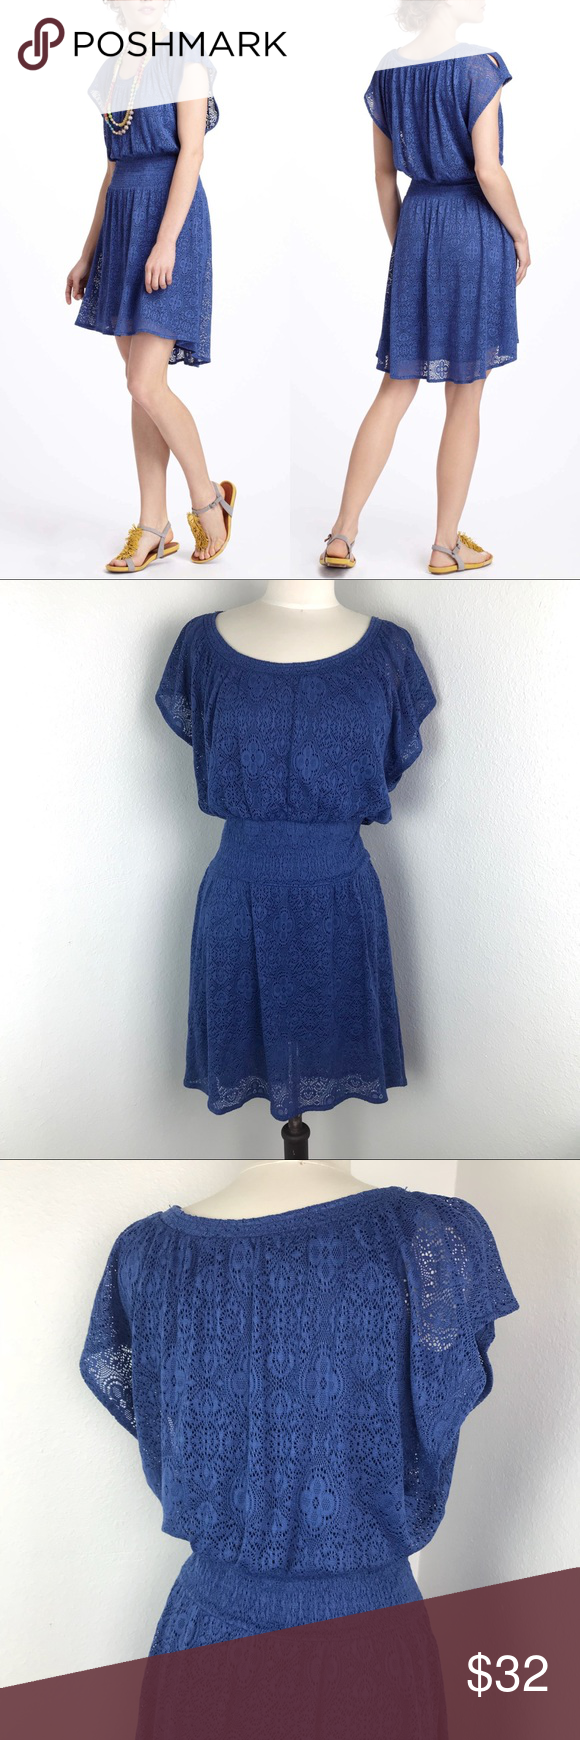 "178595017e546 Anthropologie Leifnotes Blue Lace Dress Size Small Bust: 18"" Length: 36""  Great pre-owned condition! Anthropologie Dresses High Low"